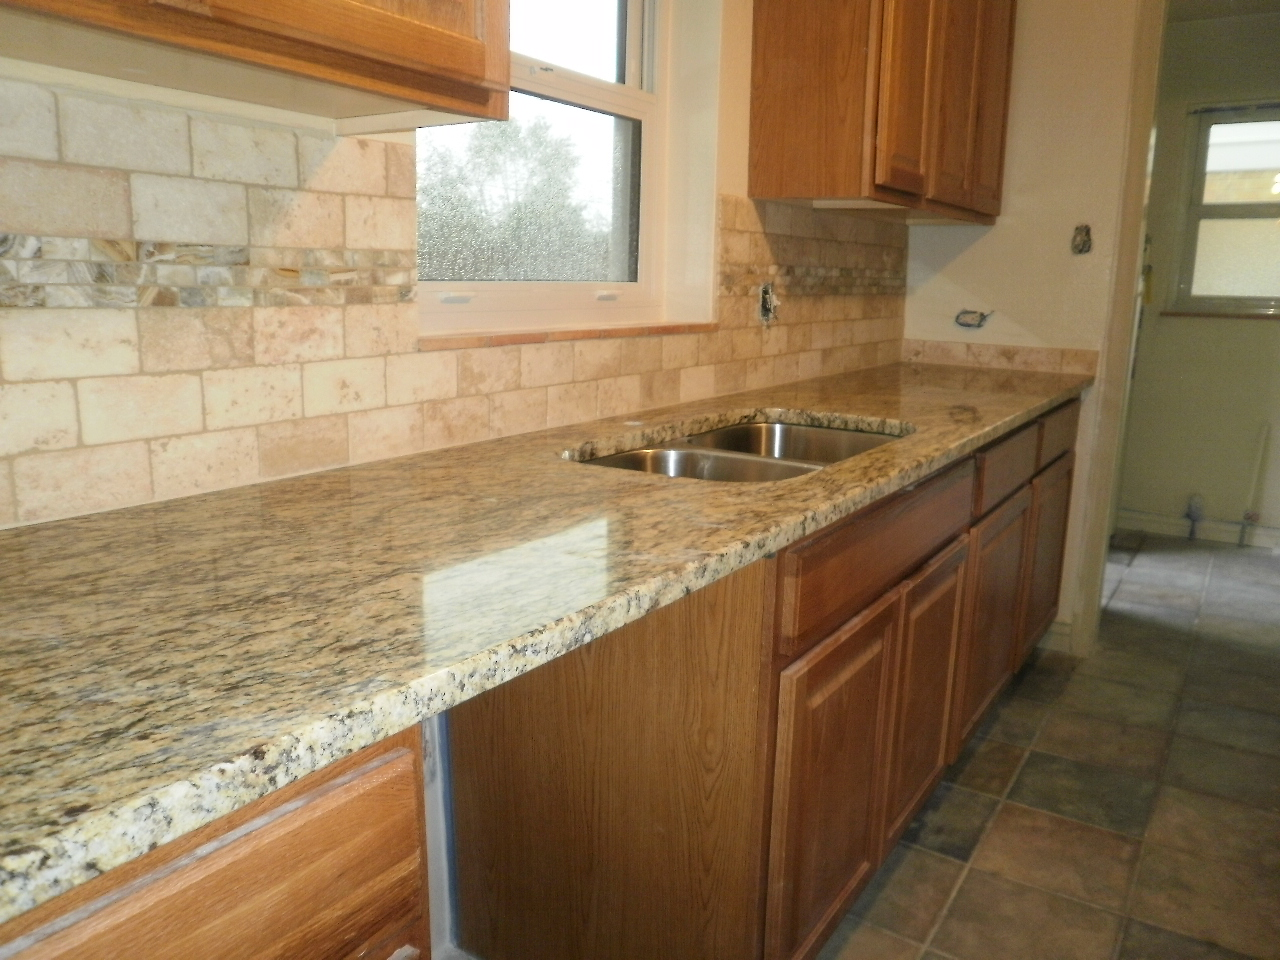 Integrity installations a division of front range backsplash just completed 3x6 - Kitchen backsplash ideas ...